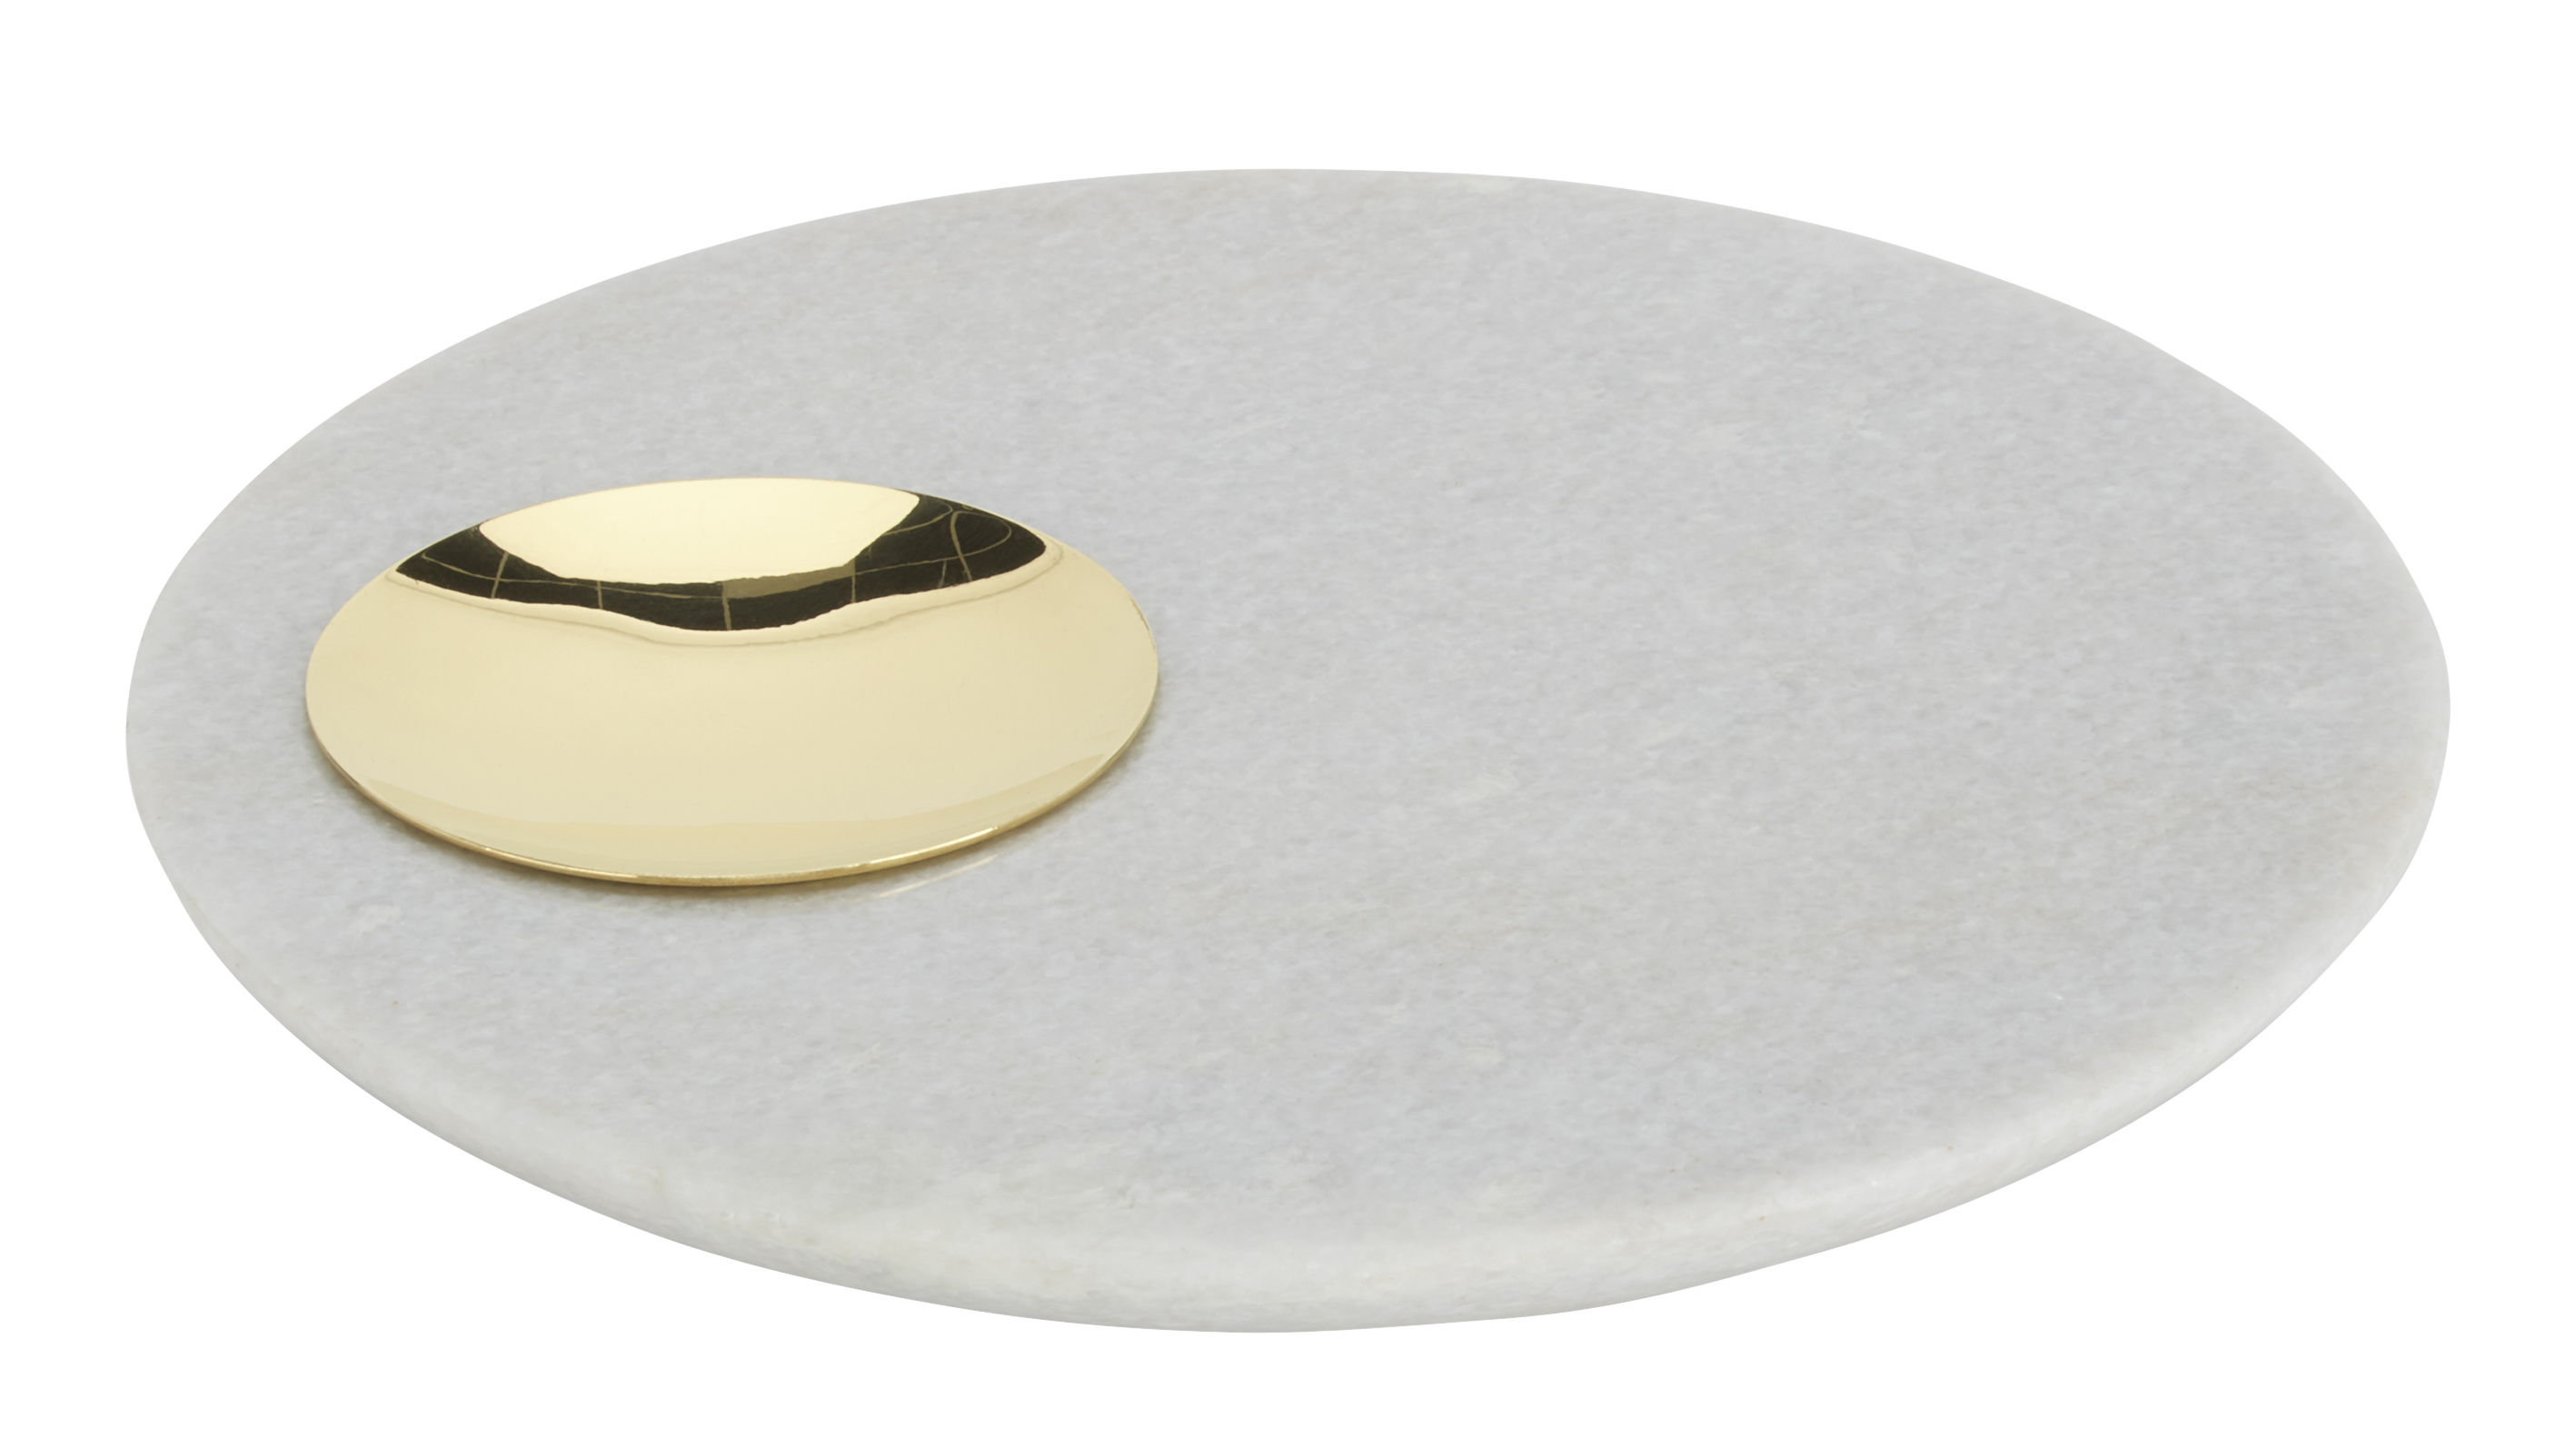 Tableware - Trays - Stone Tray - Ø 20 cm by Tom Dixon - Gold / White marble - Brass, Marble